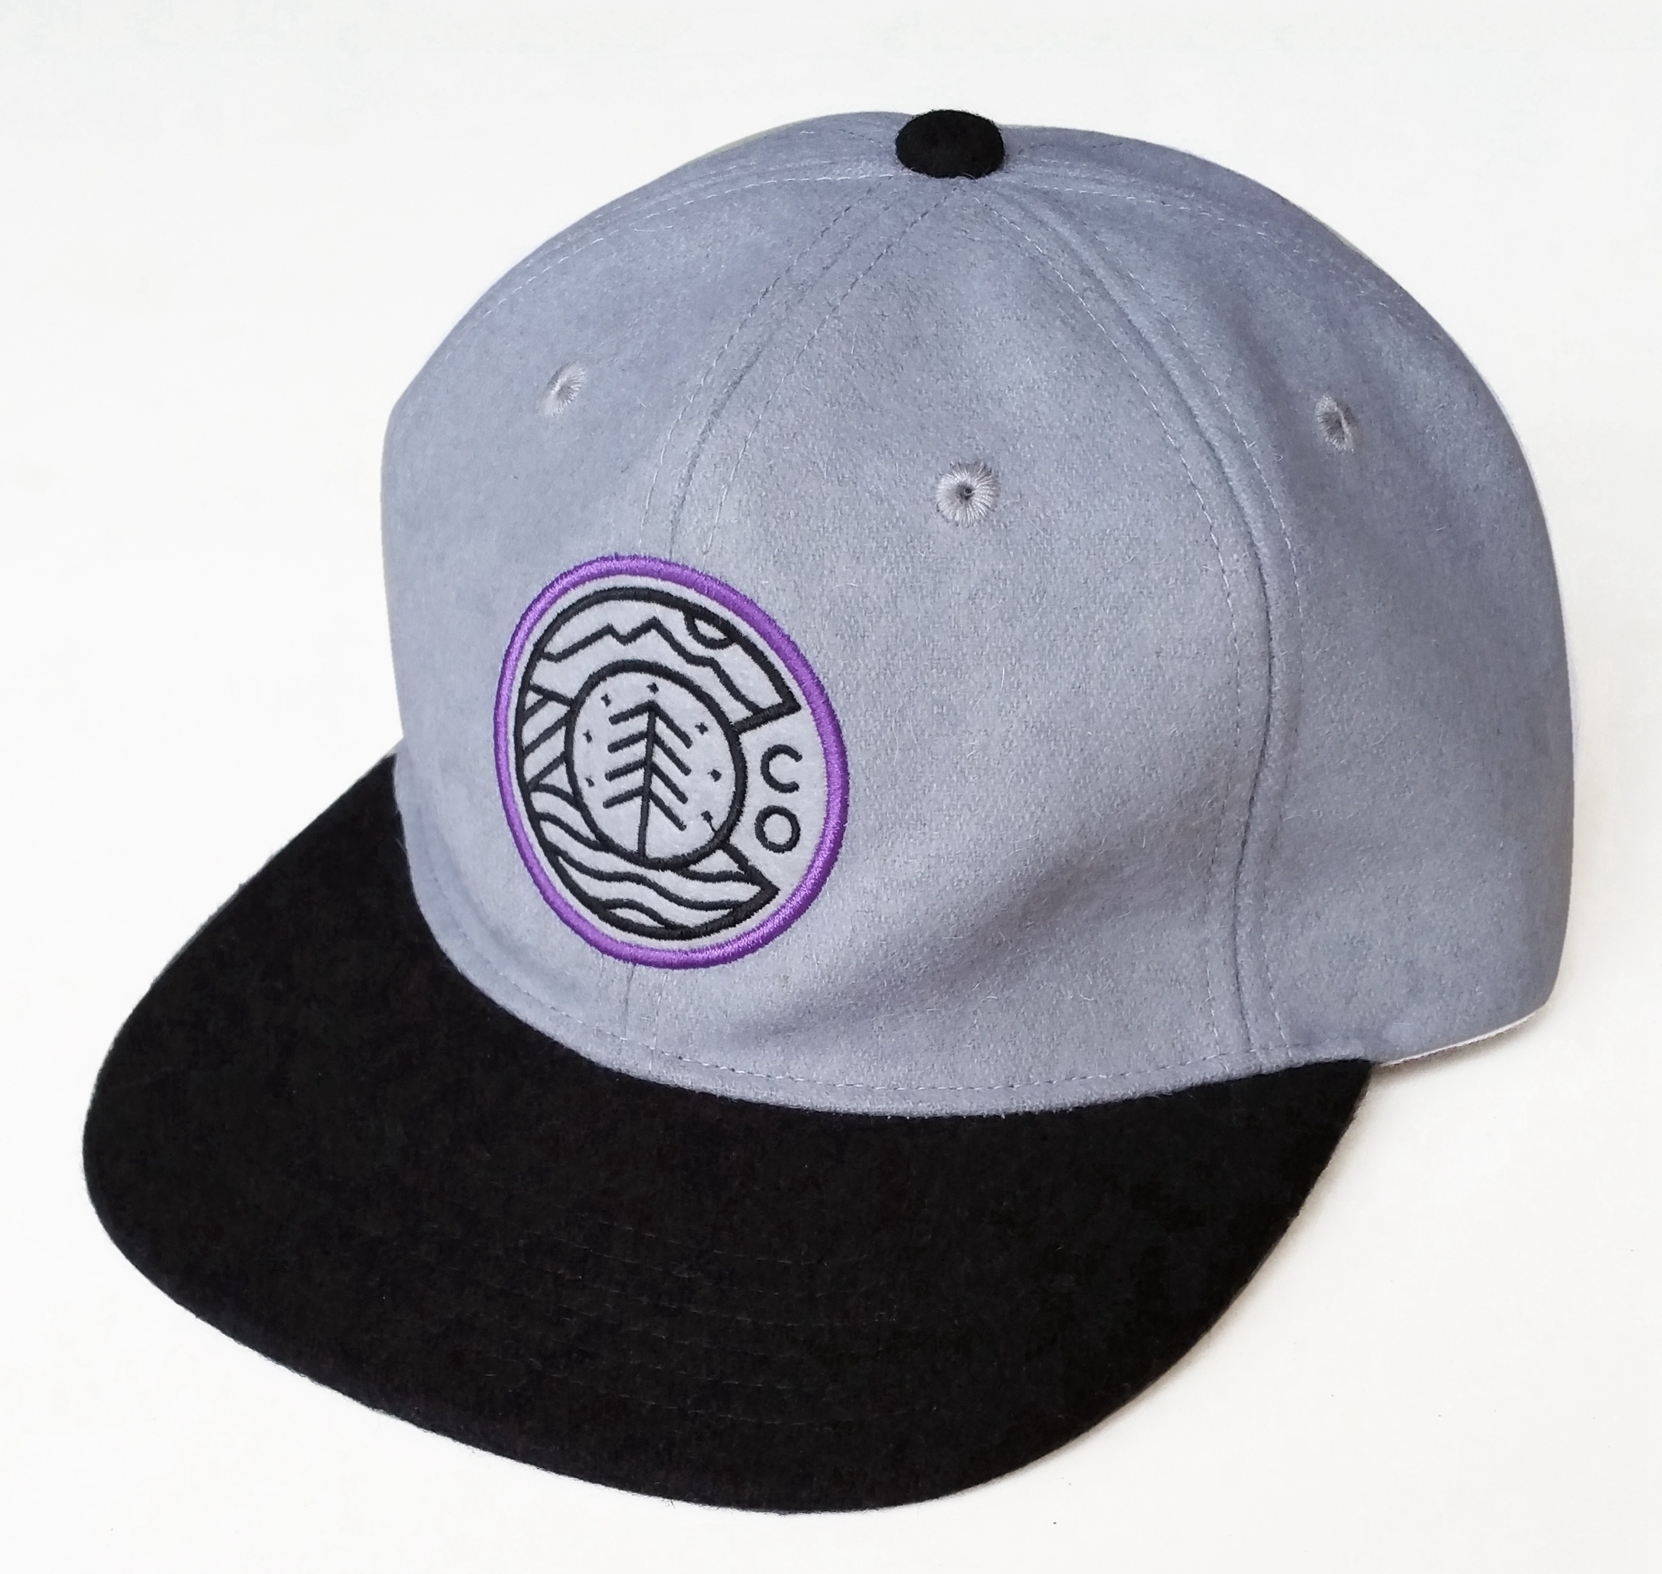 Custom Wool/Blend material unstructured snapback cap supplie